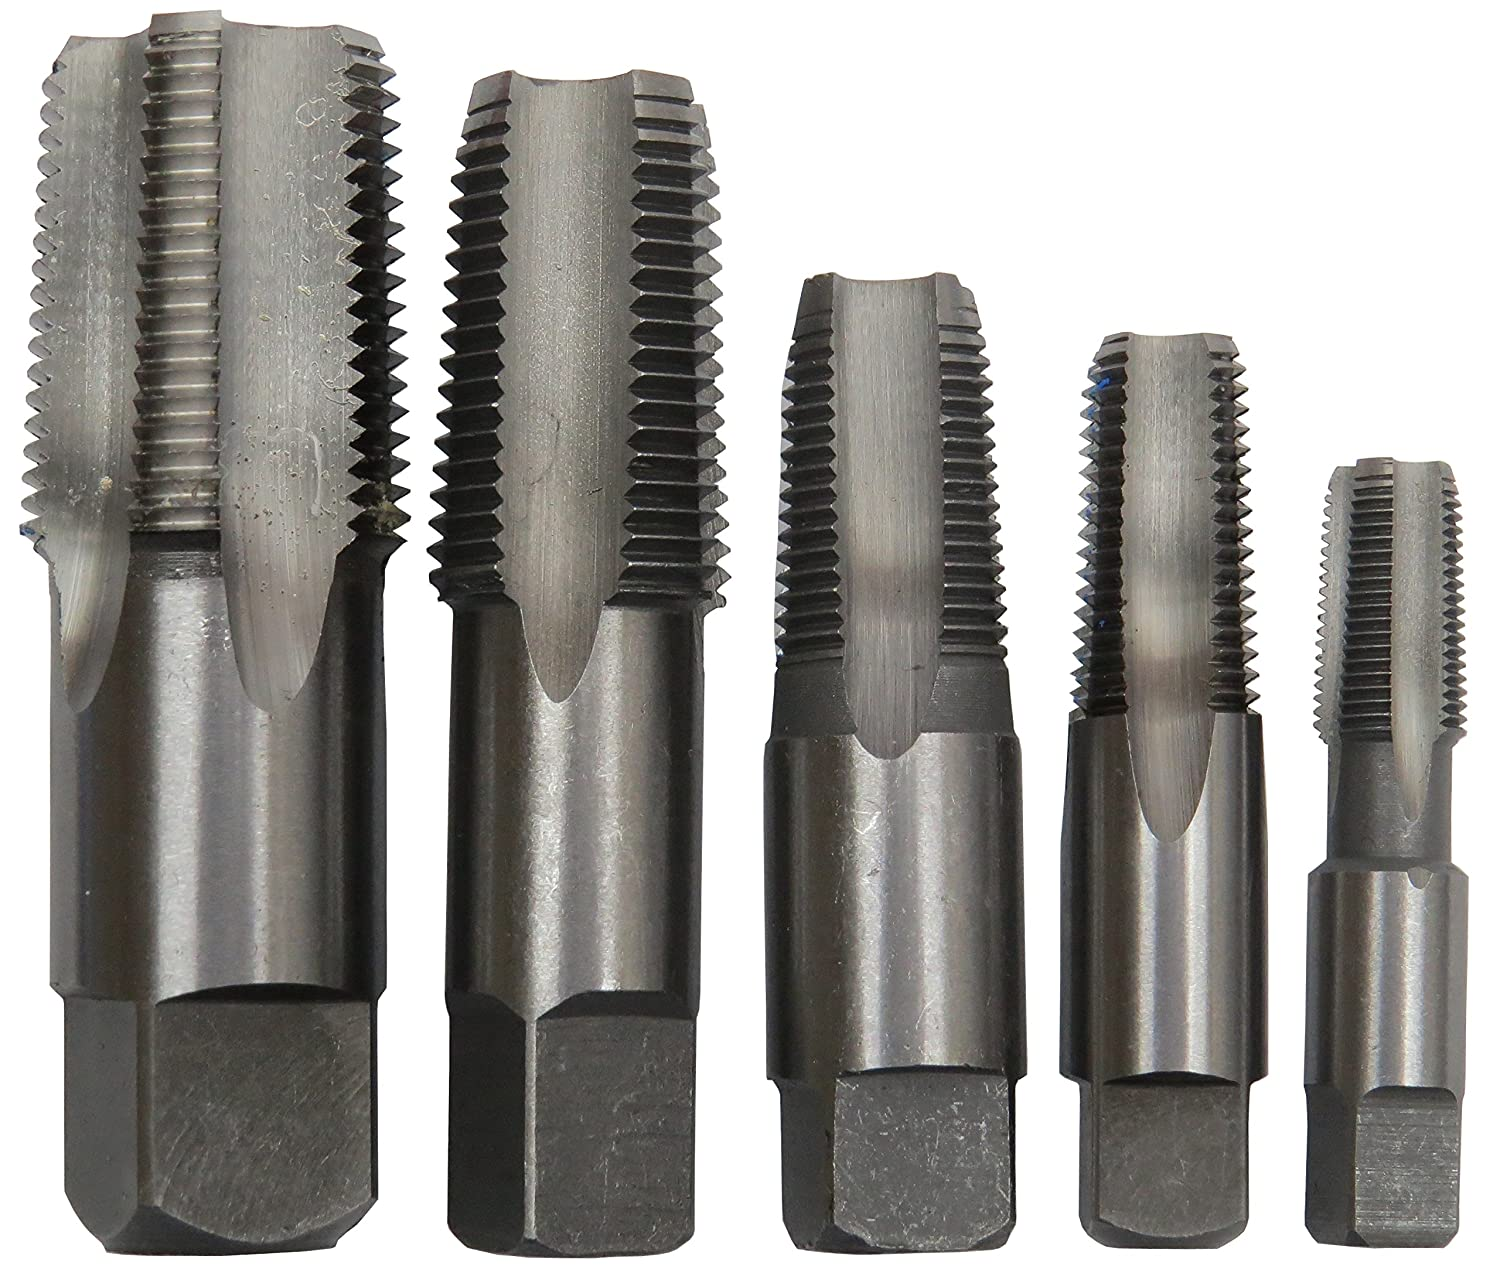 Drill America 5 Piece NPT Pipe Tap Set (1/8', 1/4', 3/8', 1/2' and 3/4'), Plastic Pouch Case, POU Series